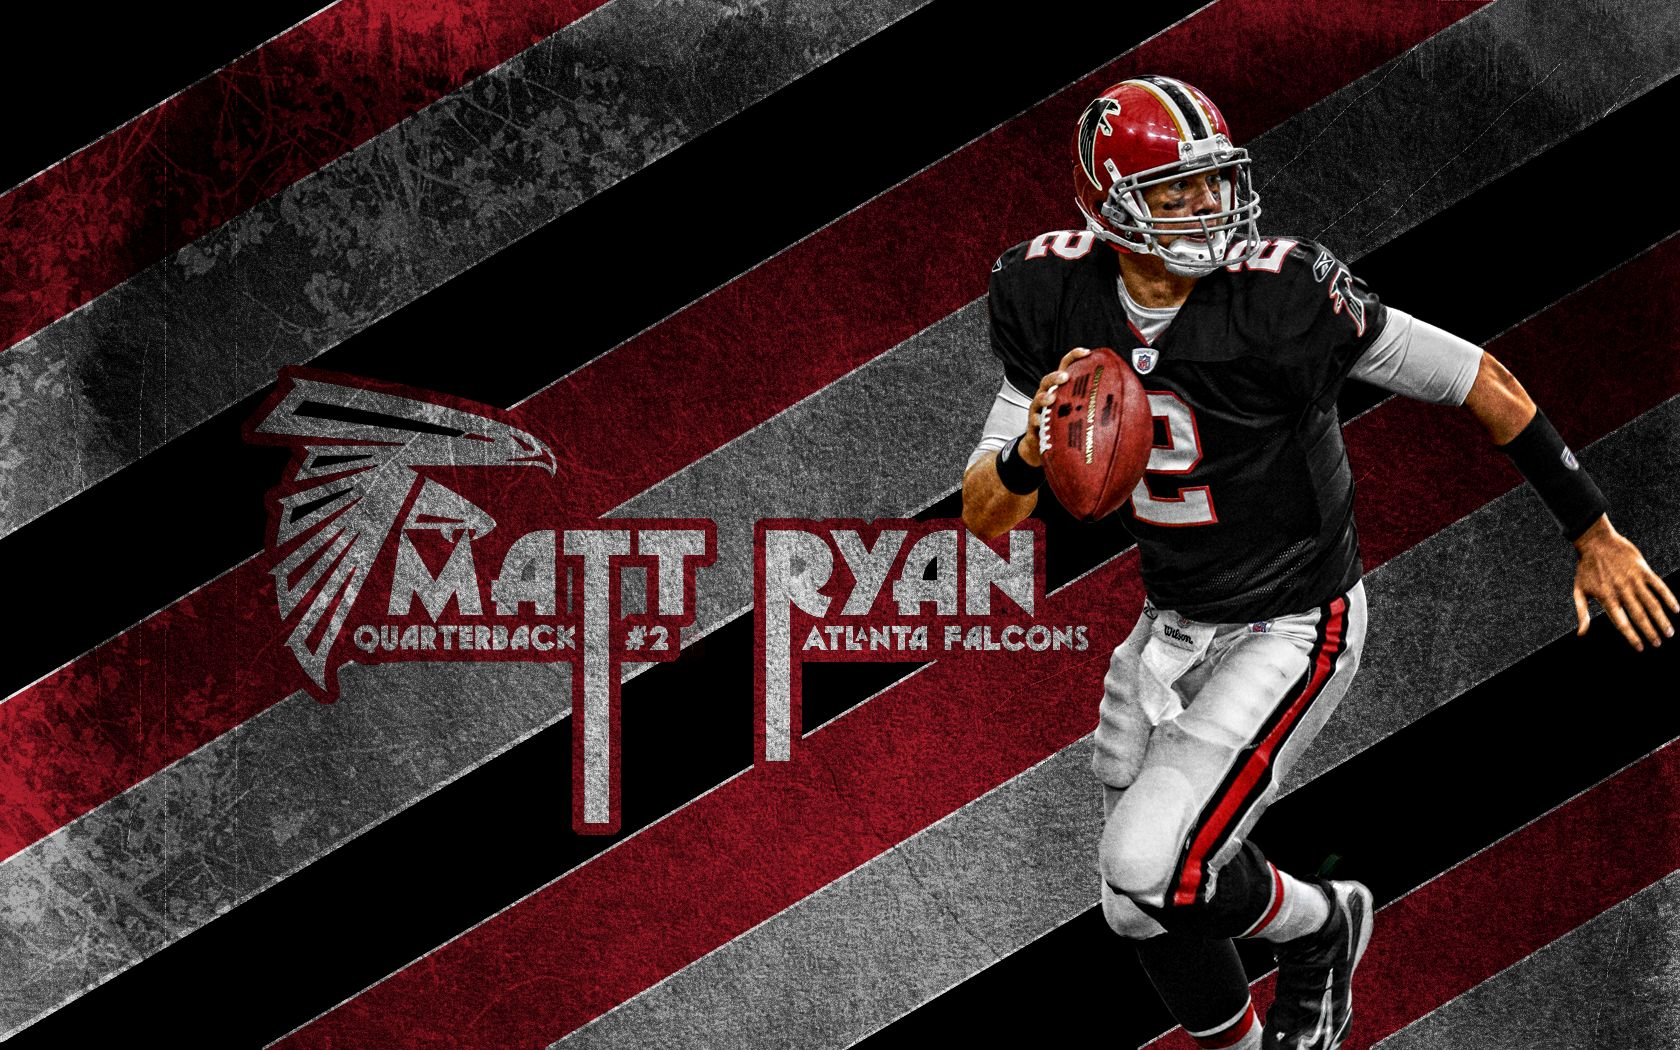 Images for atlanta falcons wallpaper matt ryan people images for atlanta falcons wallpaper matt ryan voltagebd Images